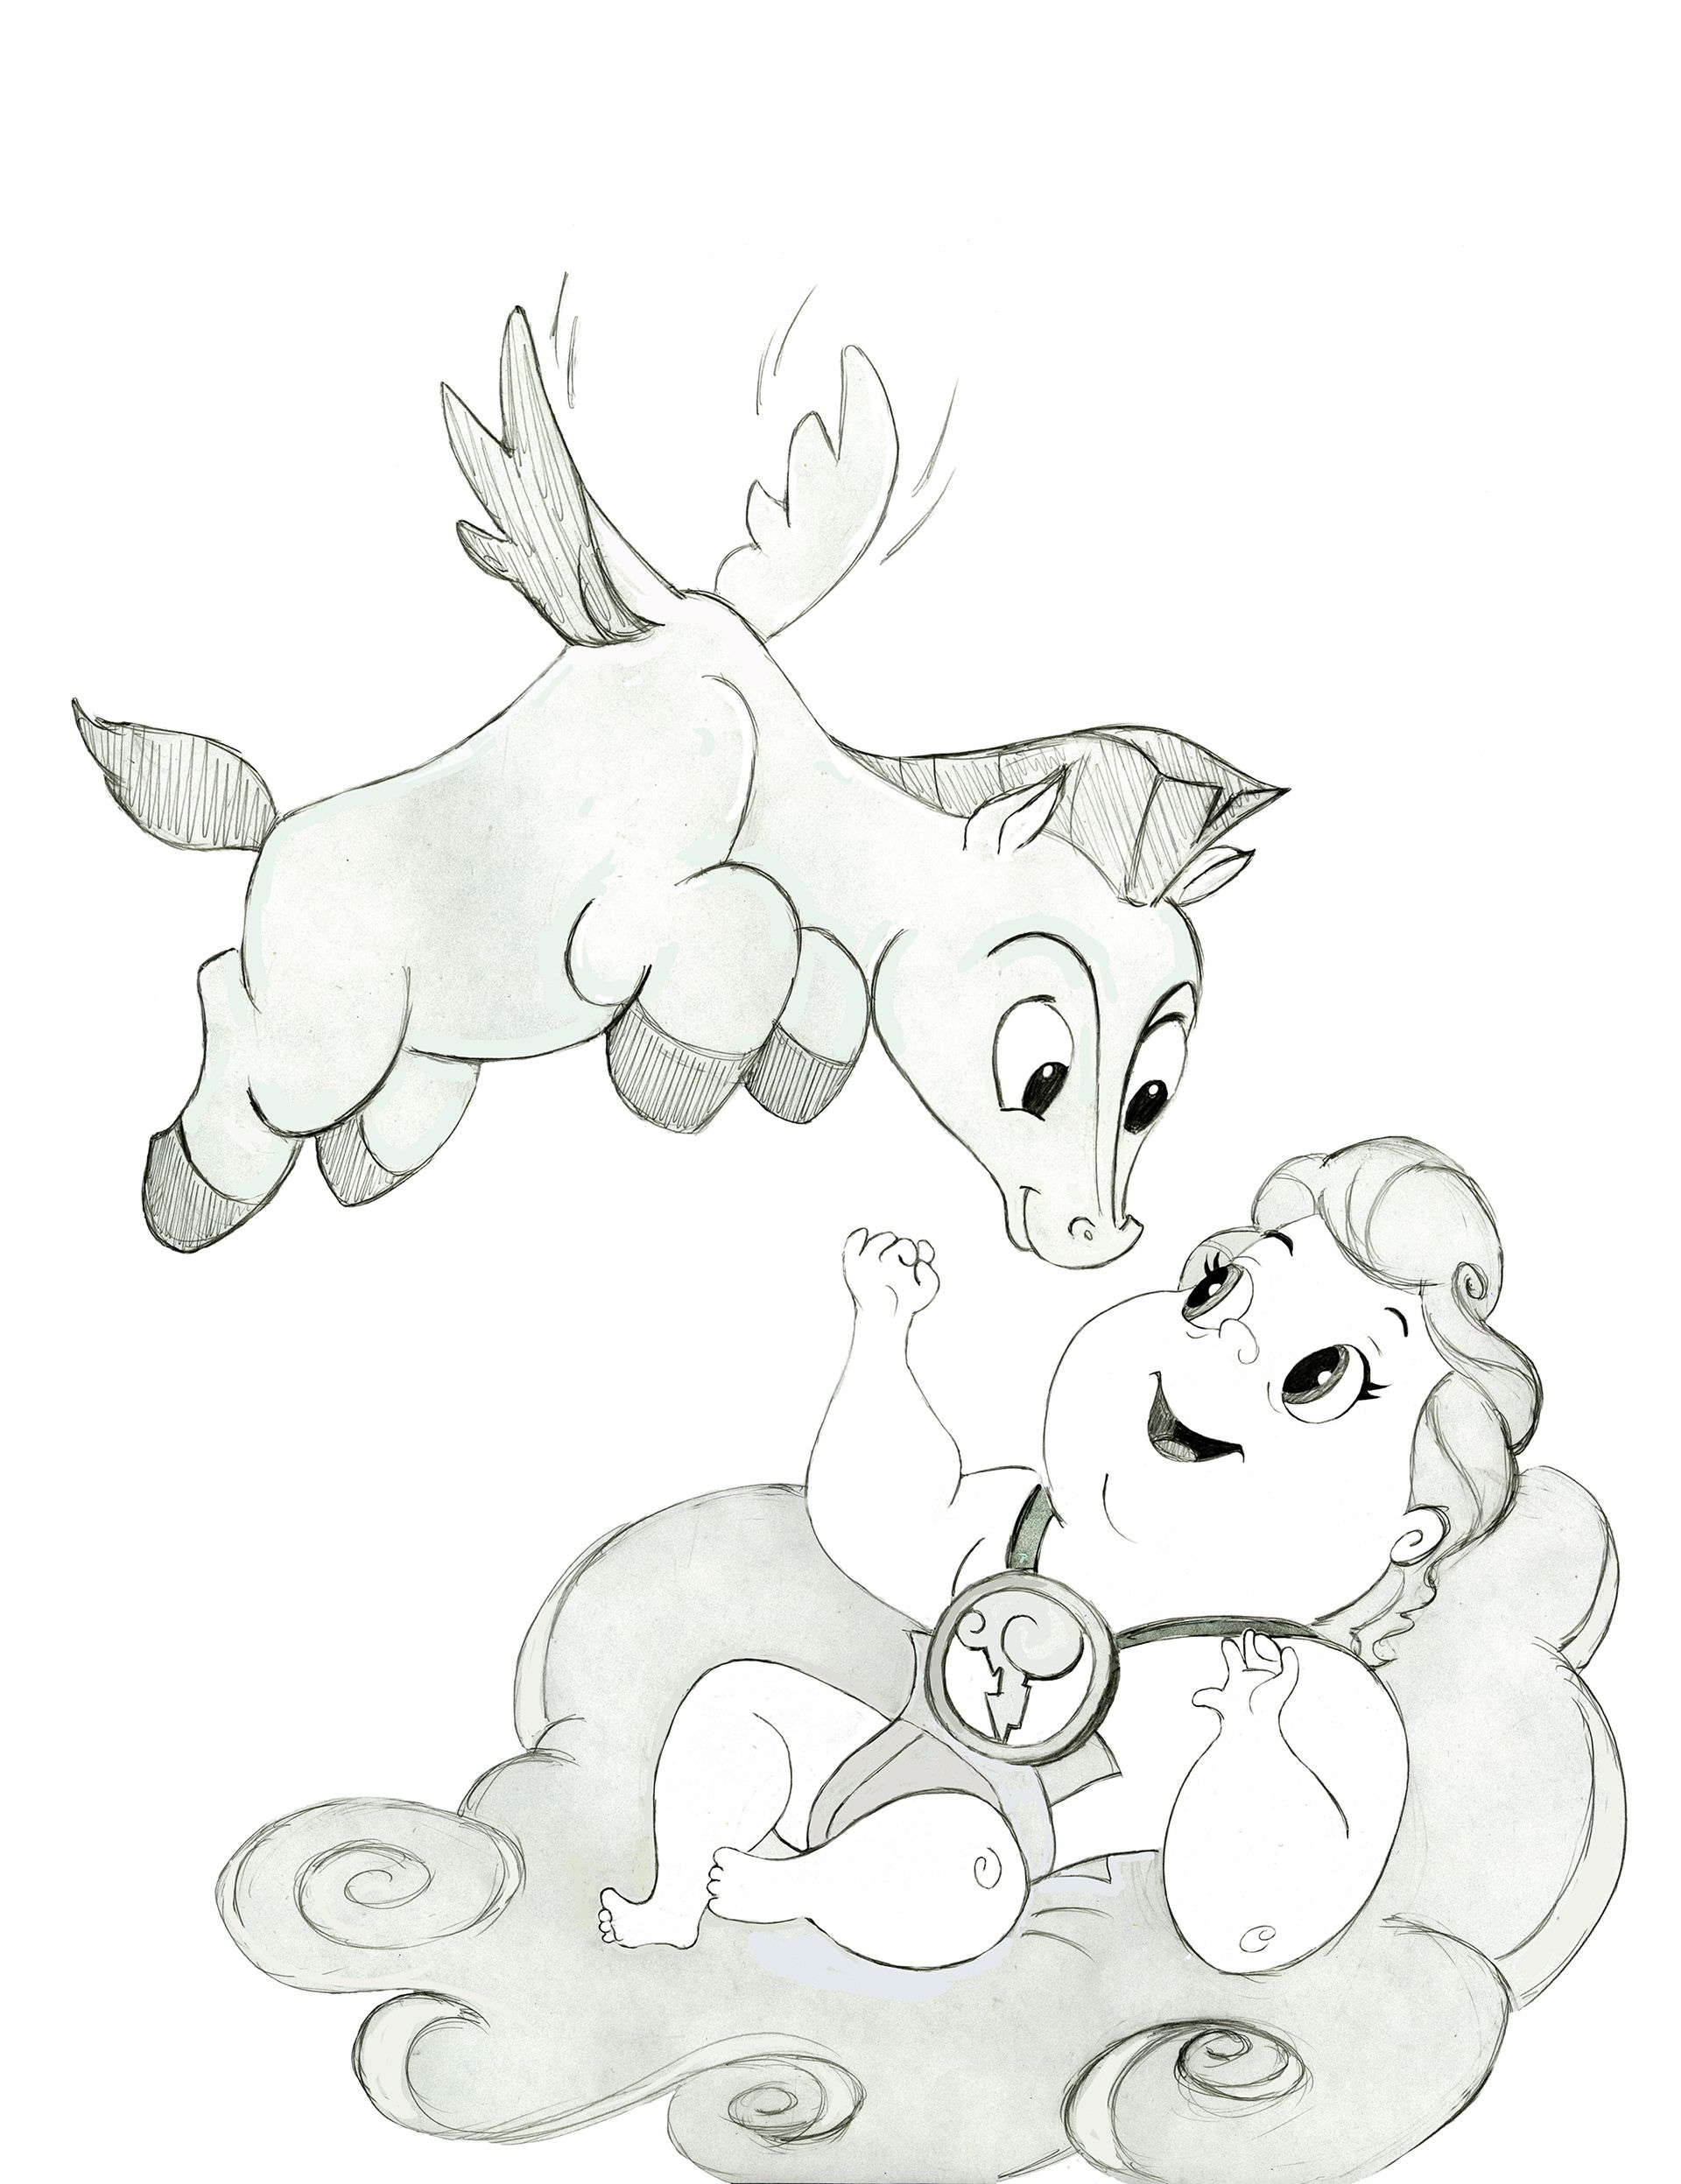 Pegasus And Baby Hercules Hercules Disney Artwork Disney Art Disney Drawings